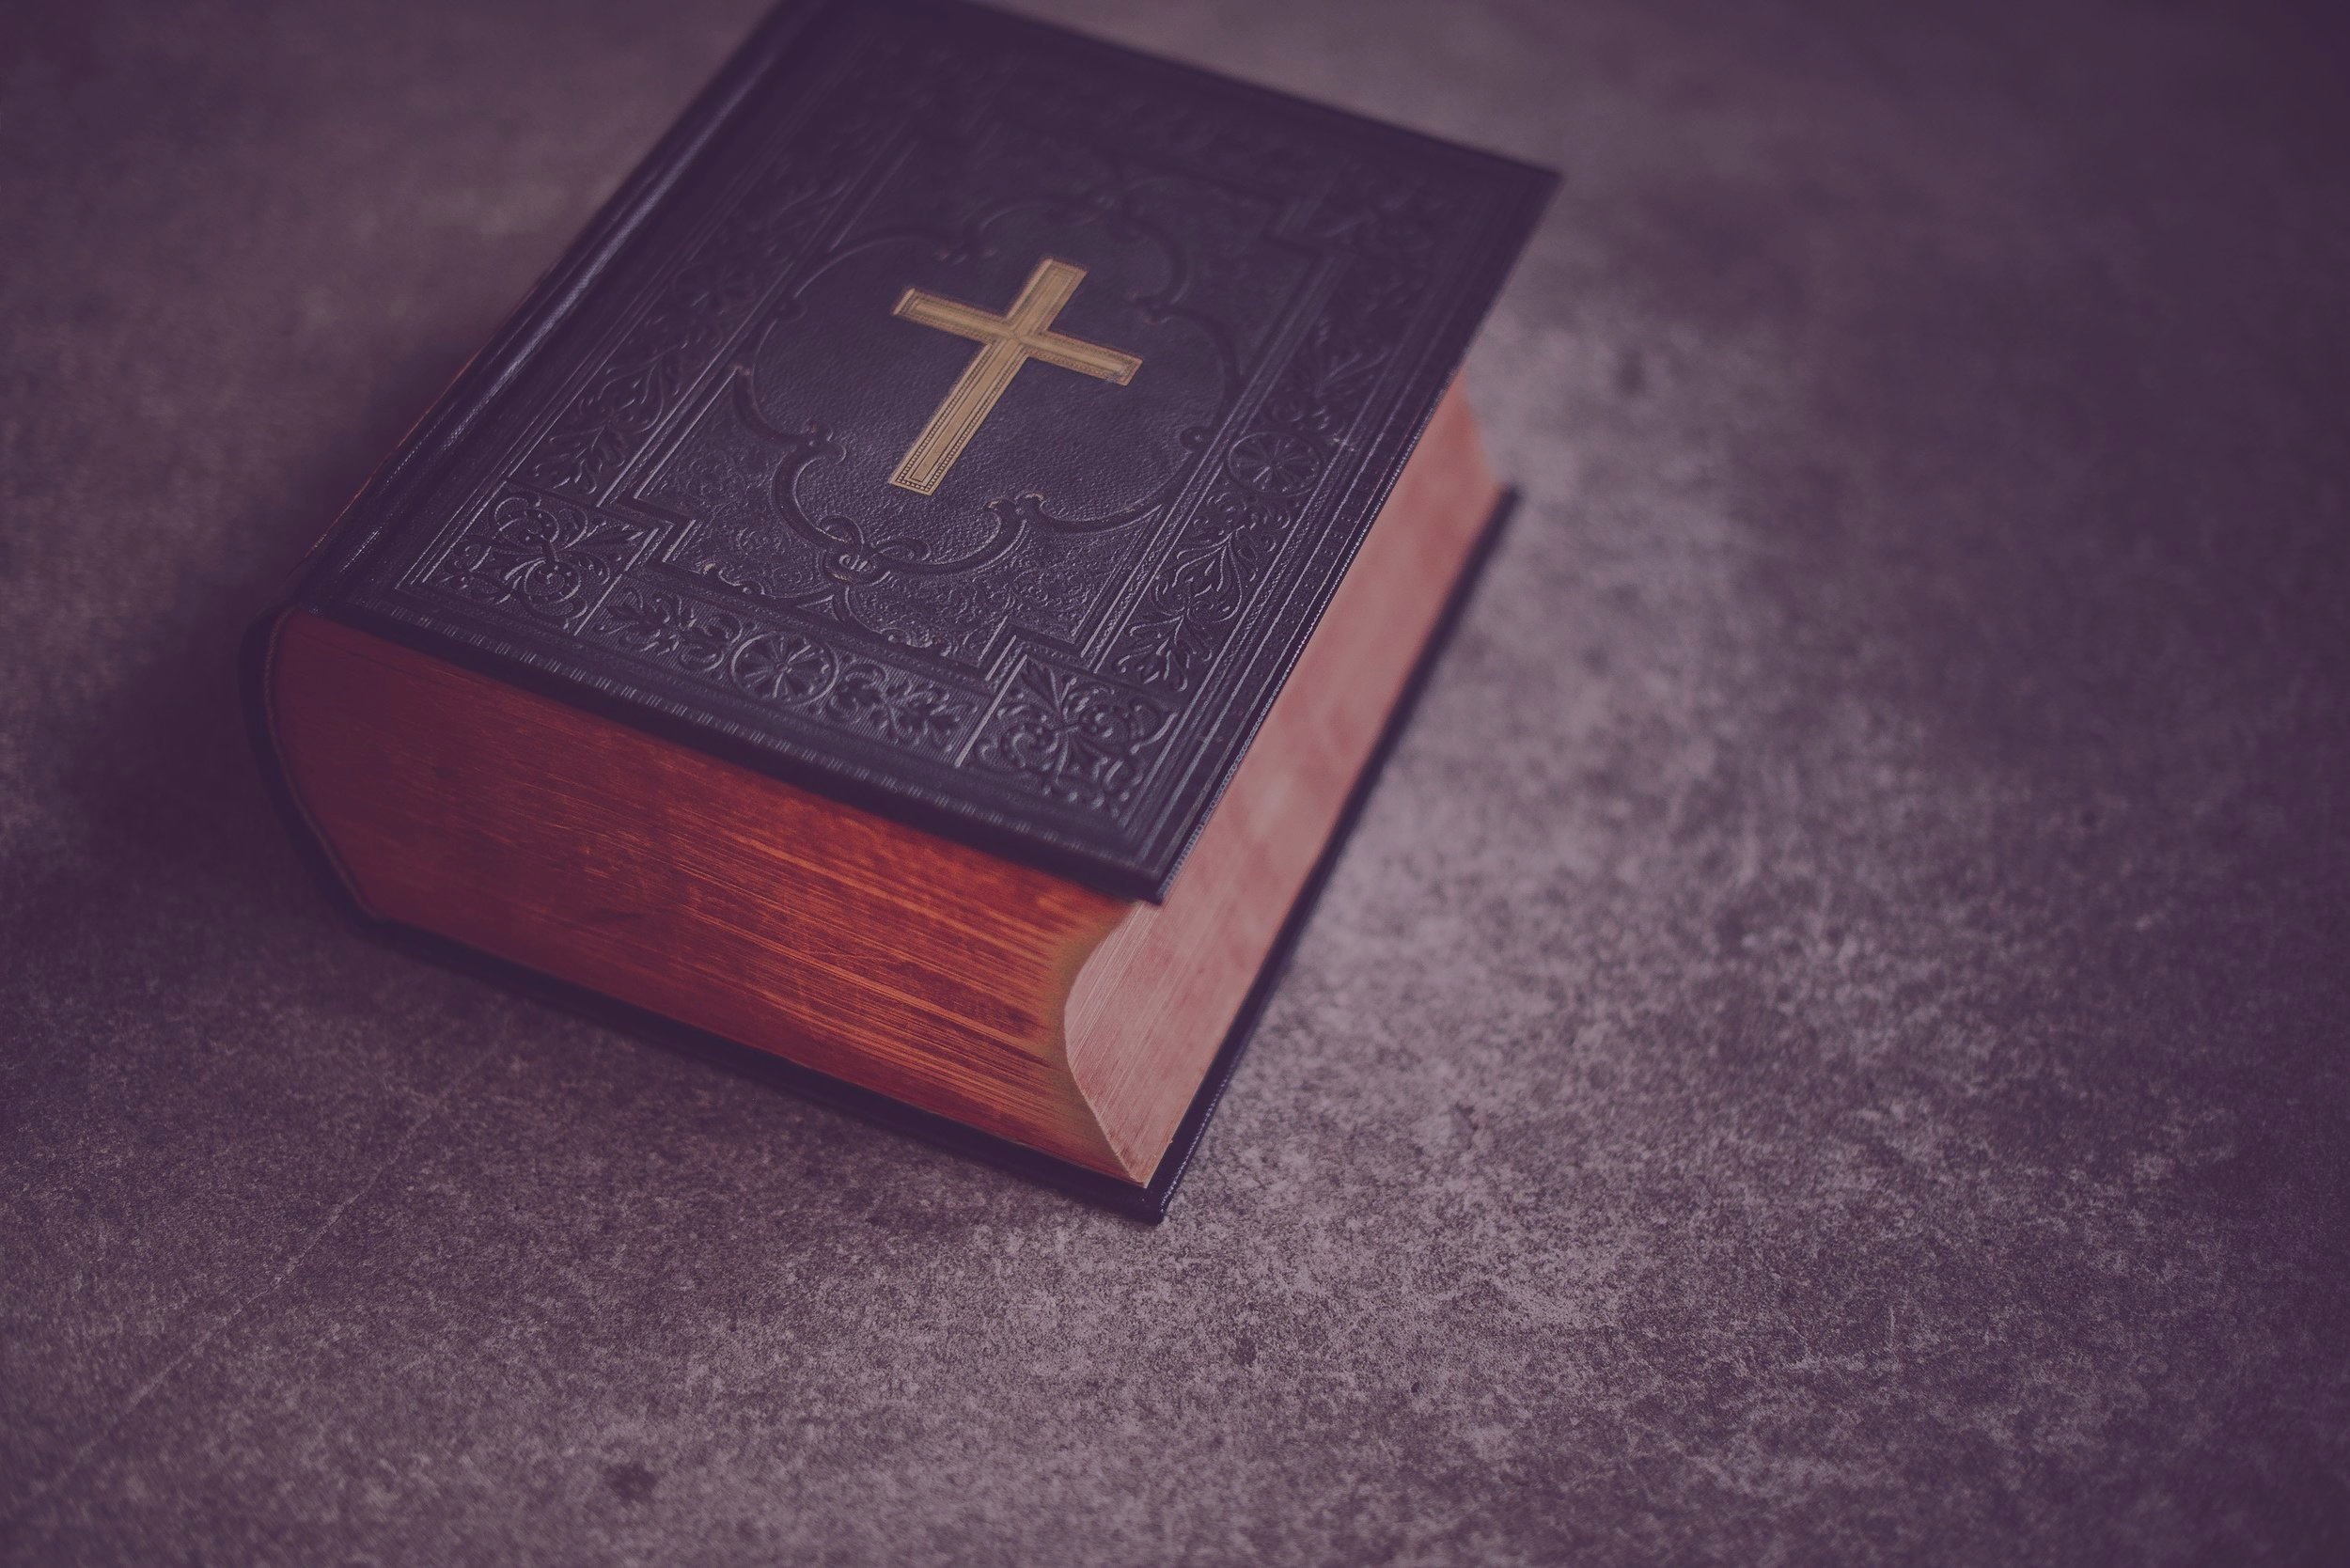 Apologetics Canada - Why these books in the New Testament?Part 1May 2019